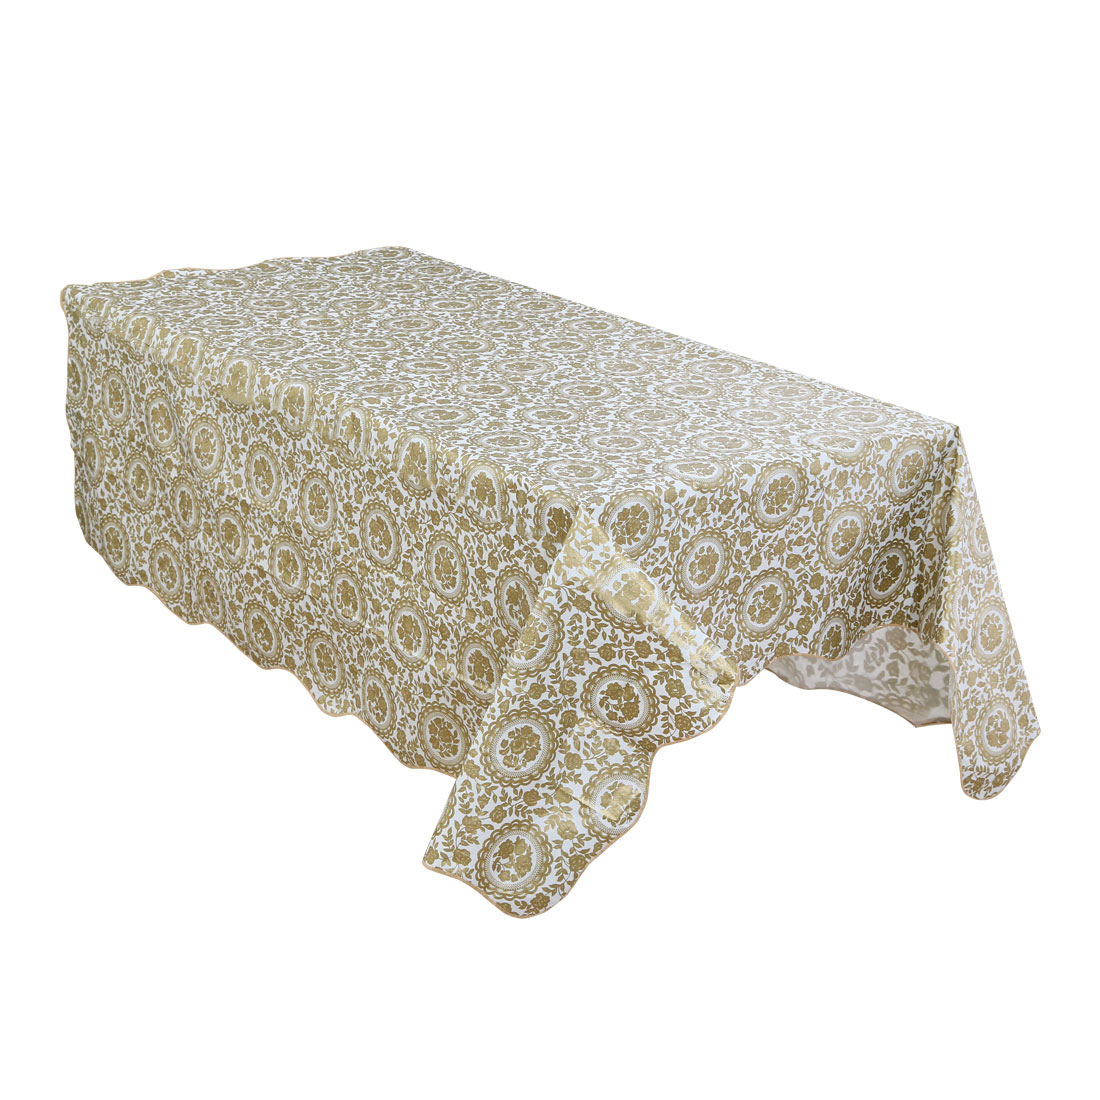 Home Picnic Turntable Flower Pattern Water Resistant Oil-proof Tablecloth Table Cloth Cover Gold Tone 41 x 60 Inch